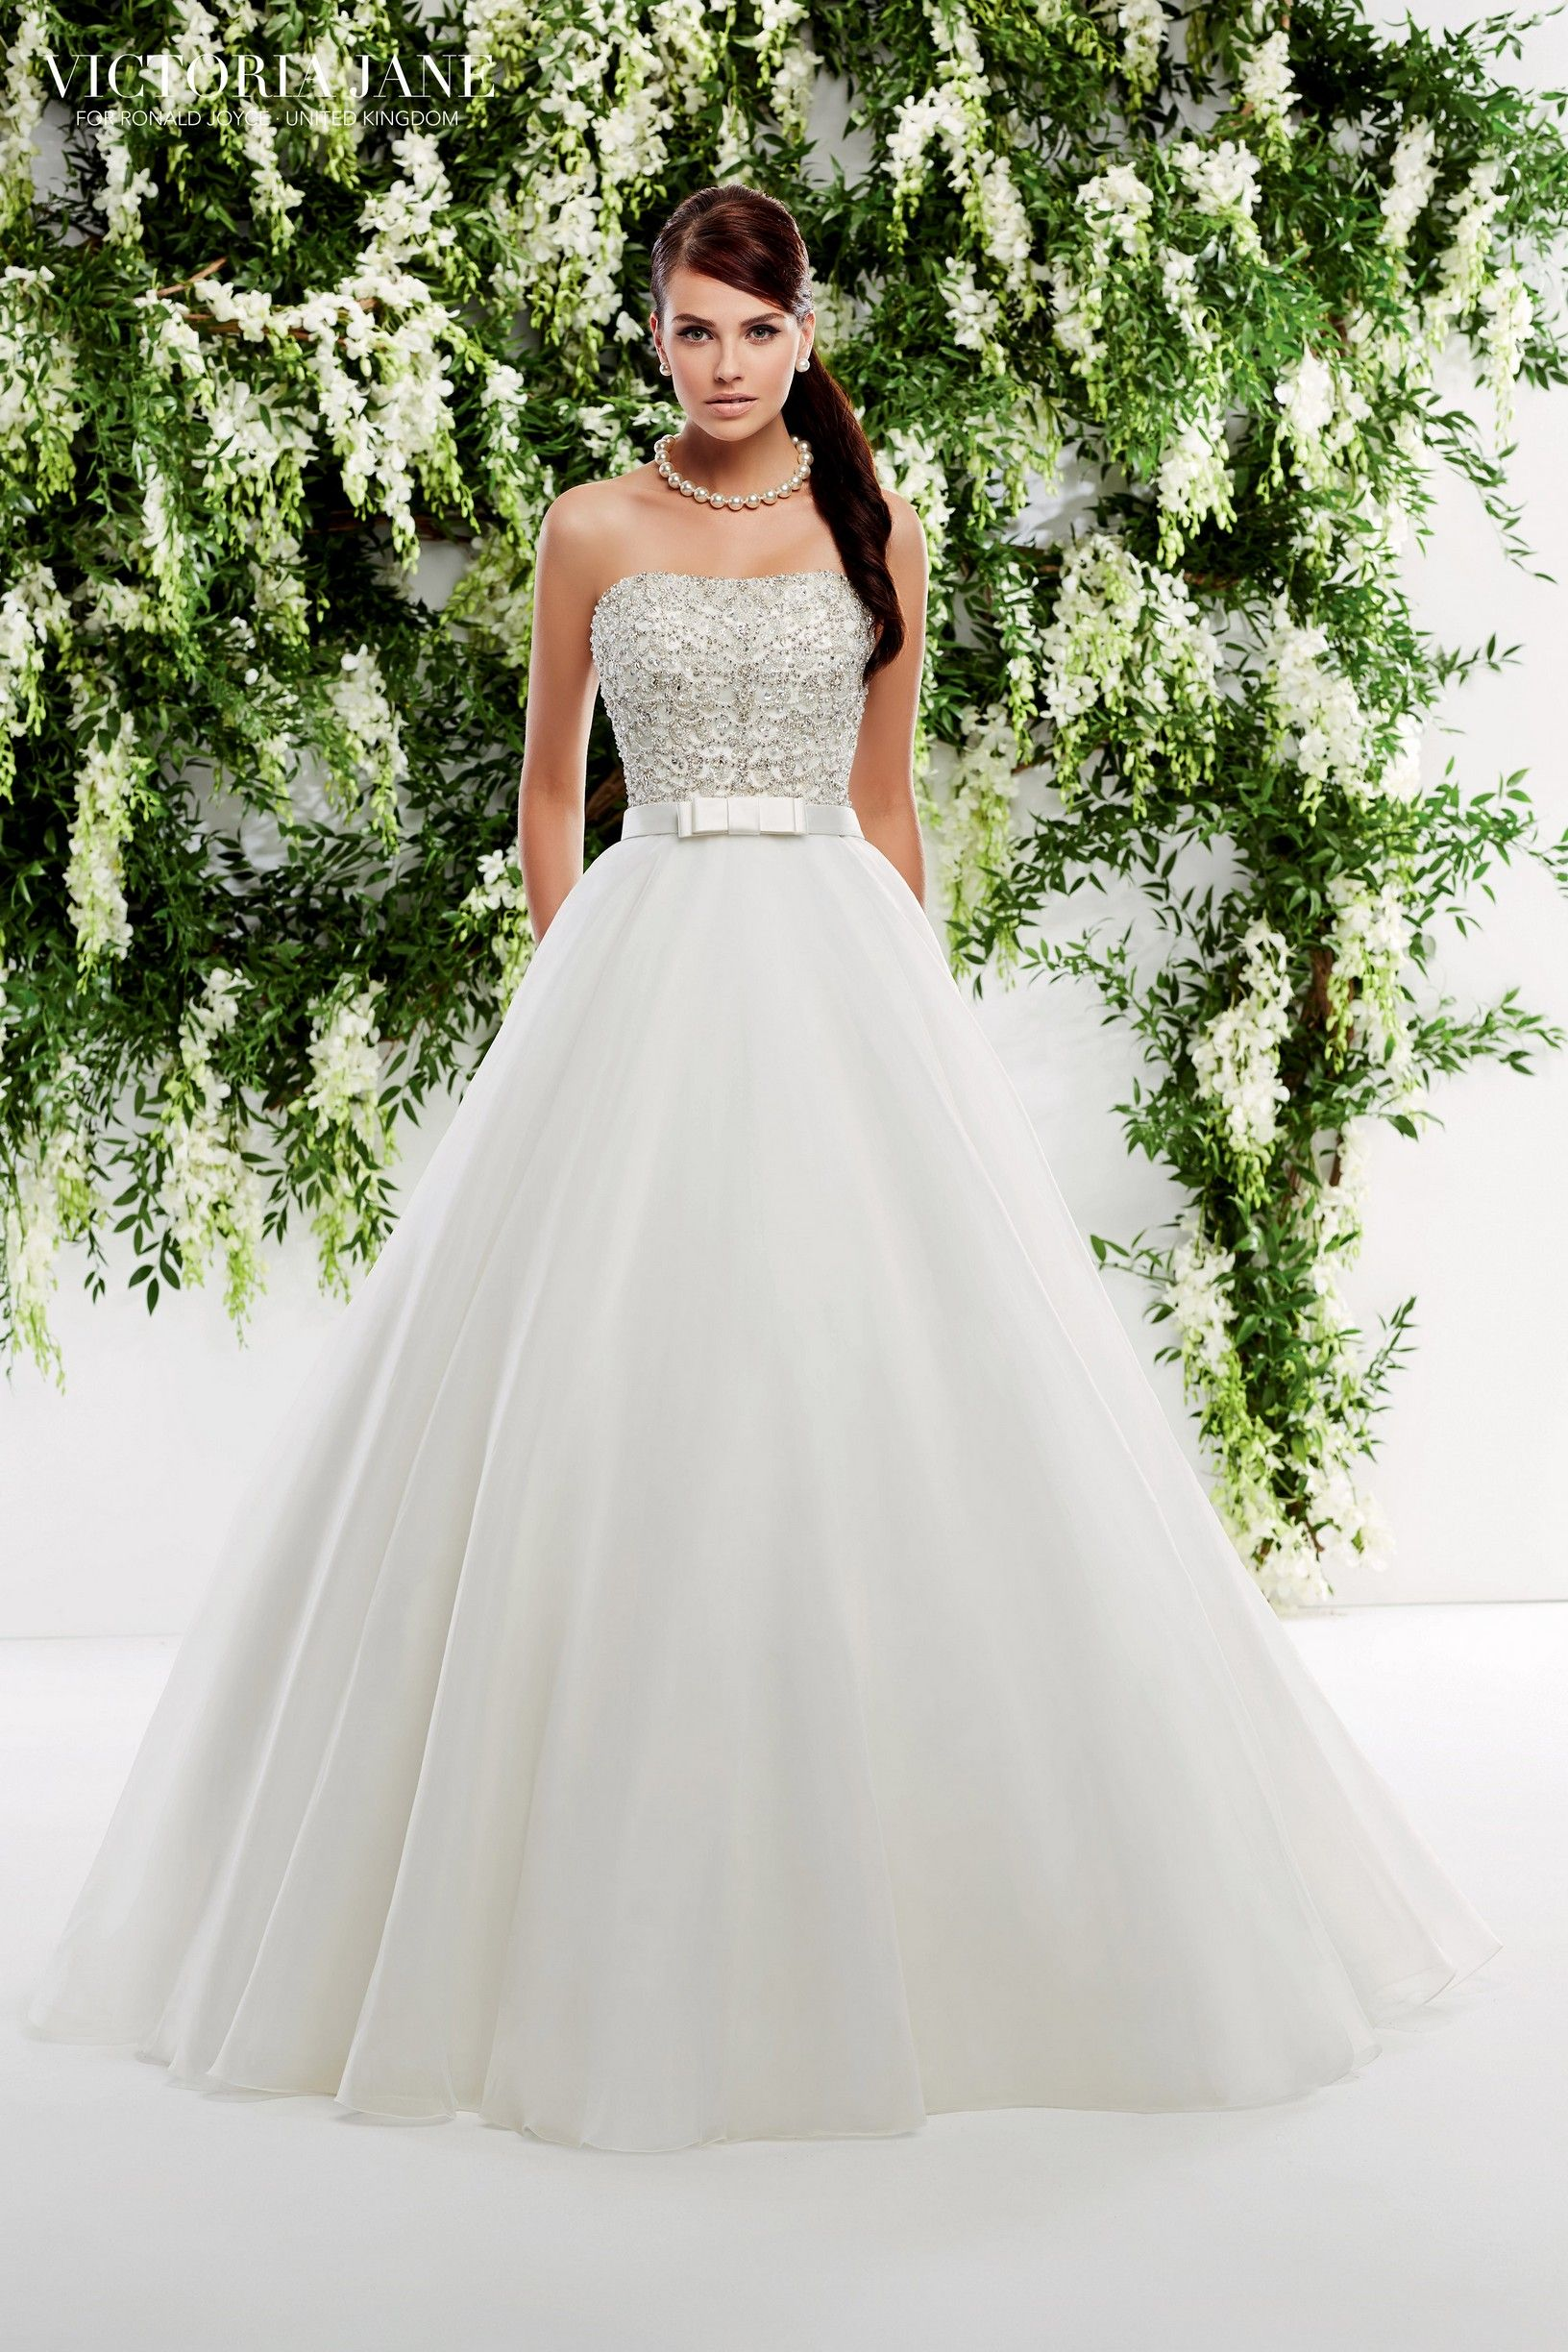 Oceana vestidos de novia pinterest ronald joyce wedding the victoria jane collection showcases contemporary couture wedding dresses with style and elegance contact anya bridal couture today to book an ombrellifo Gallery